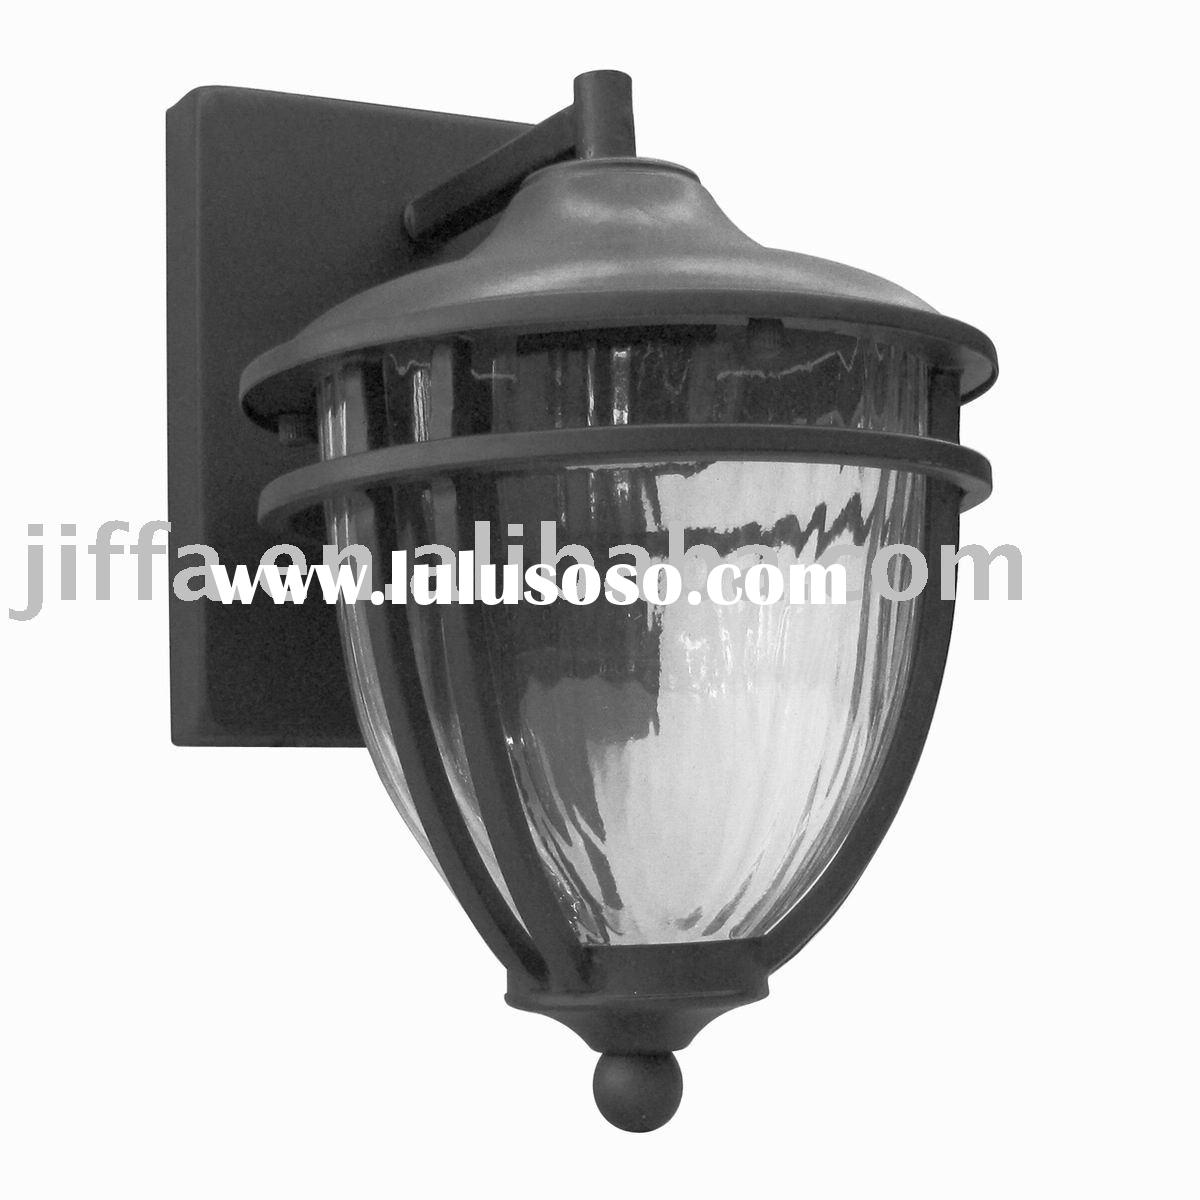 Exterior wall mounted solar lights images exterior wall mounted solar lights wall mount outdoor lights aloadofball Images